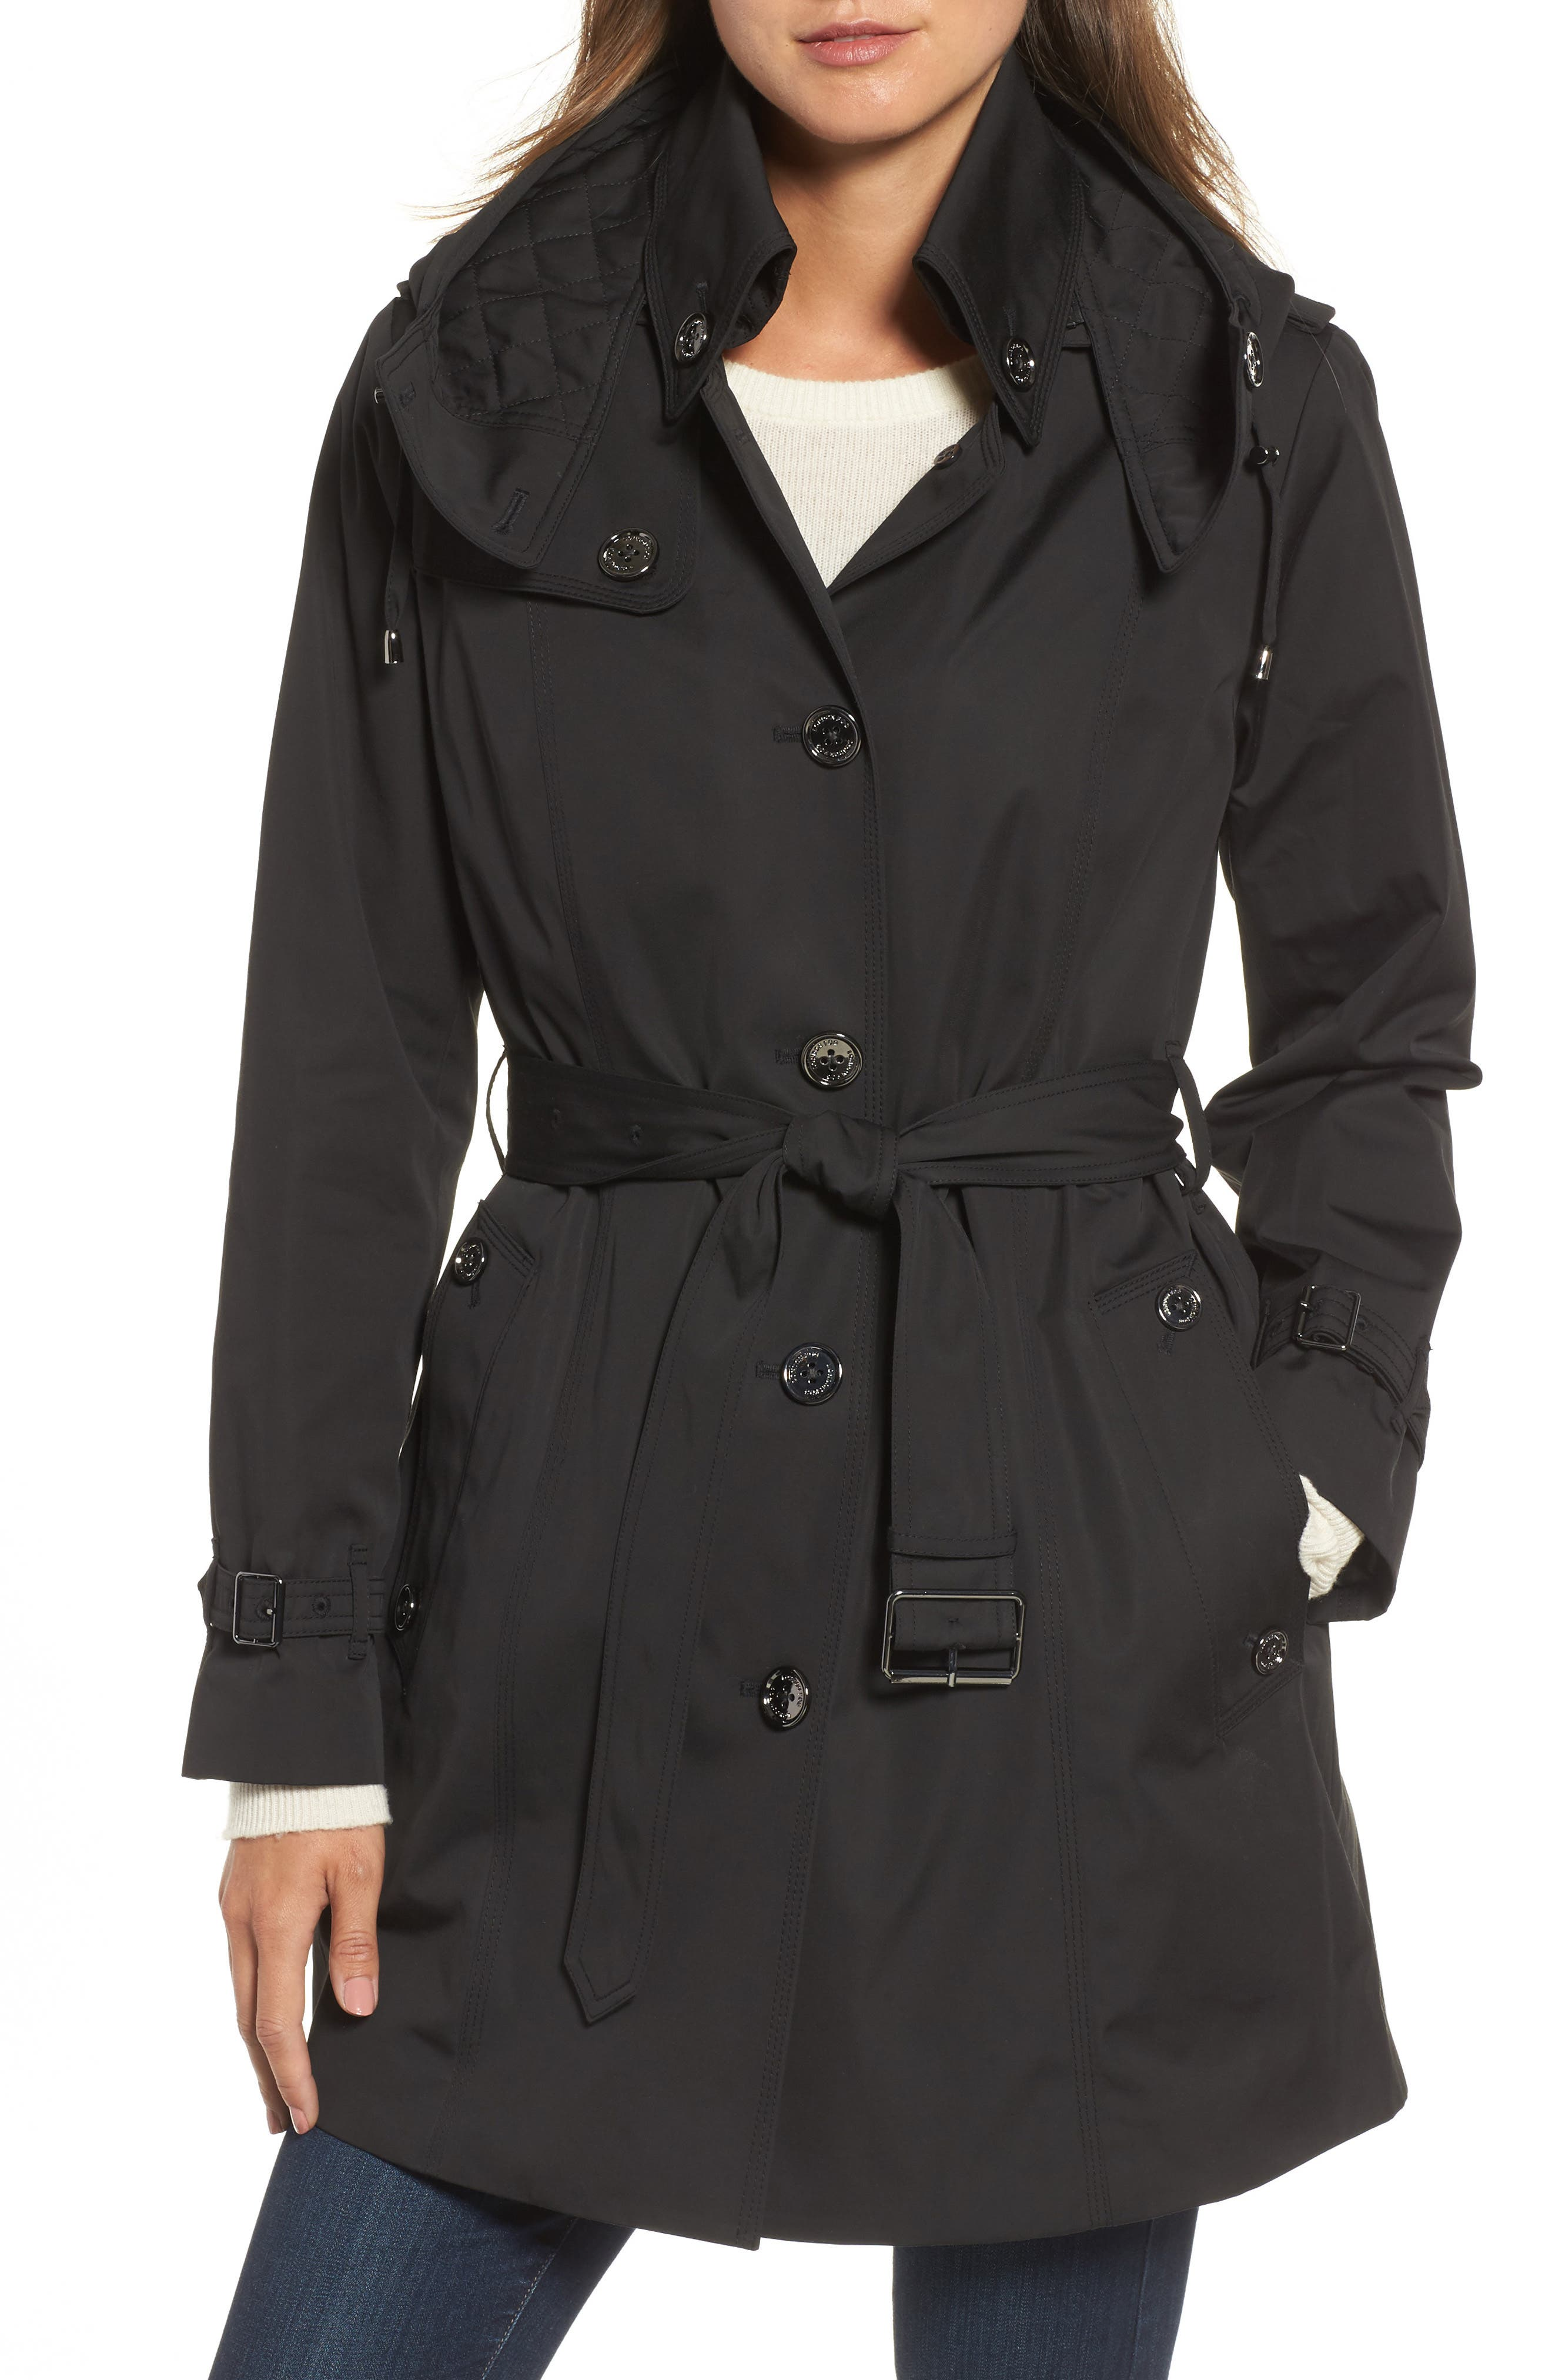 London Fog Short Trench Coat